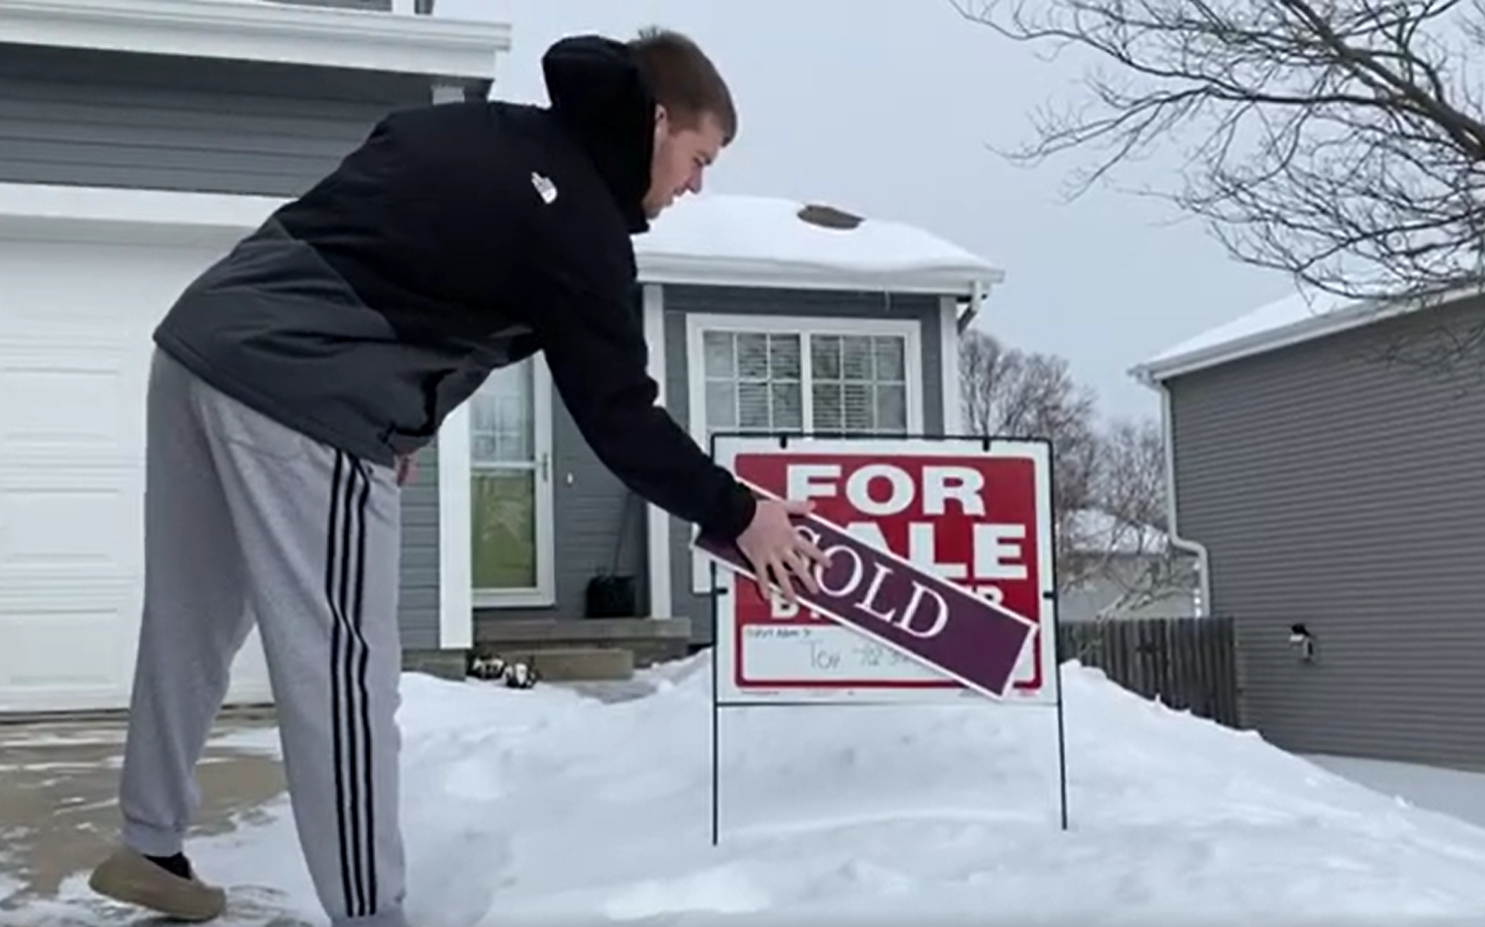 Man places sold sign in his yard